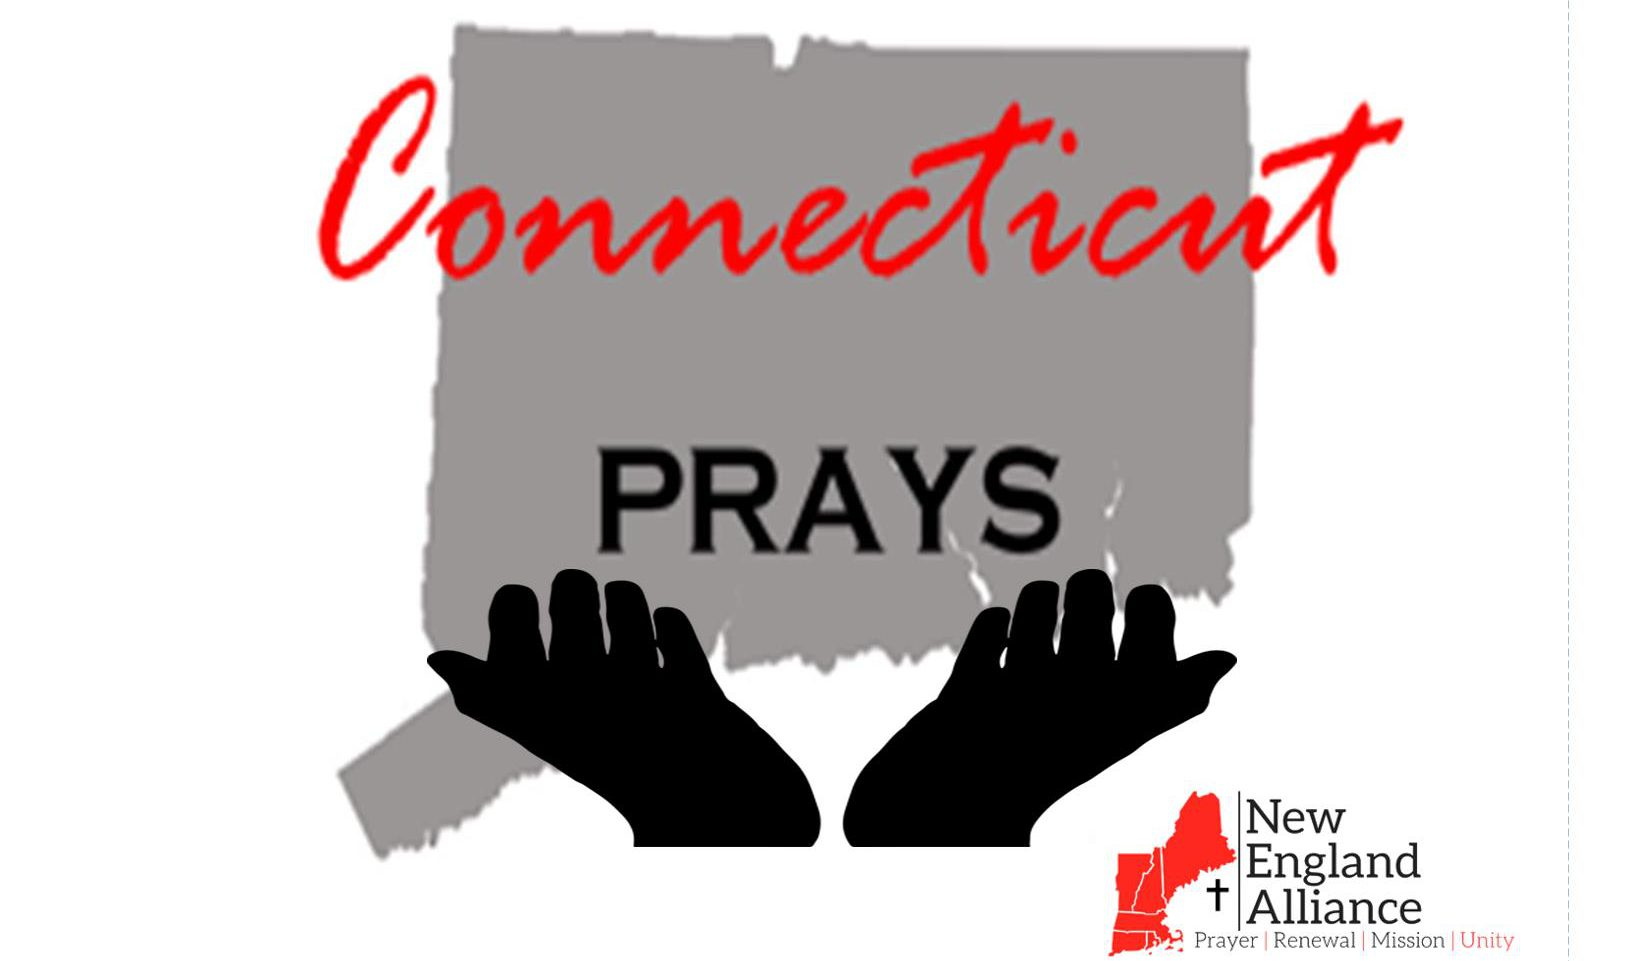 UNITING CHURCHES TO PRAY ACROSS CONNECTICUT